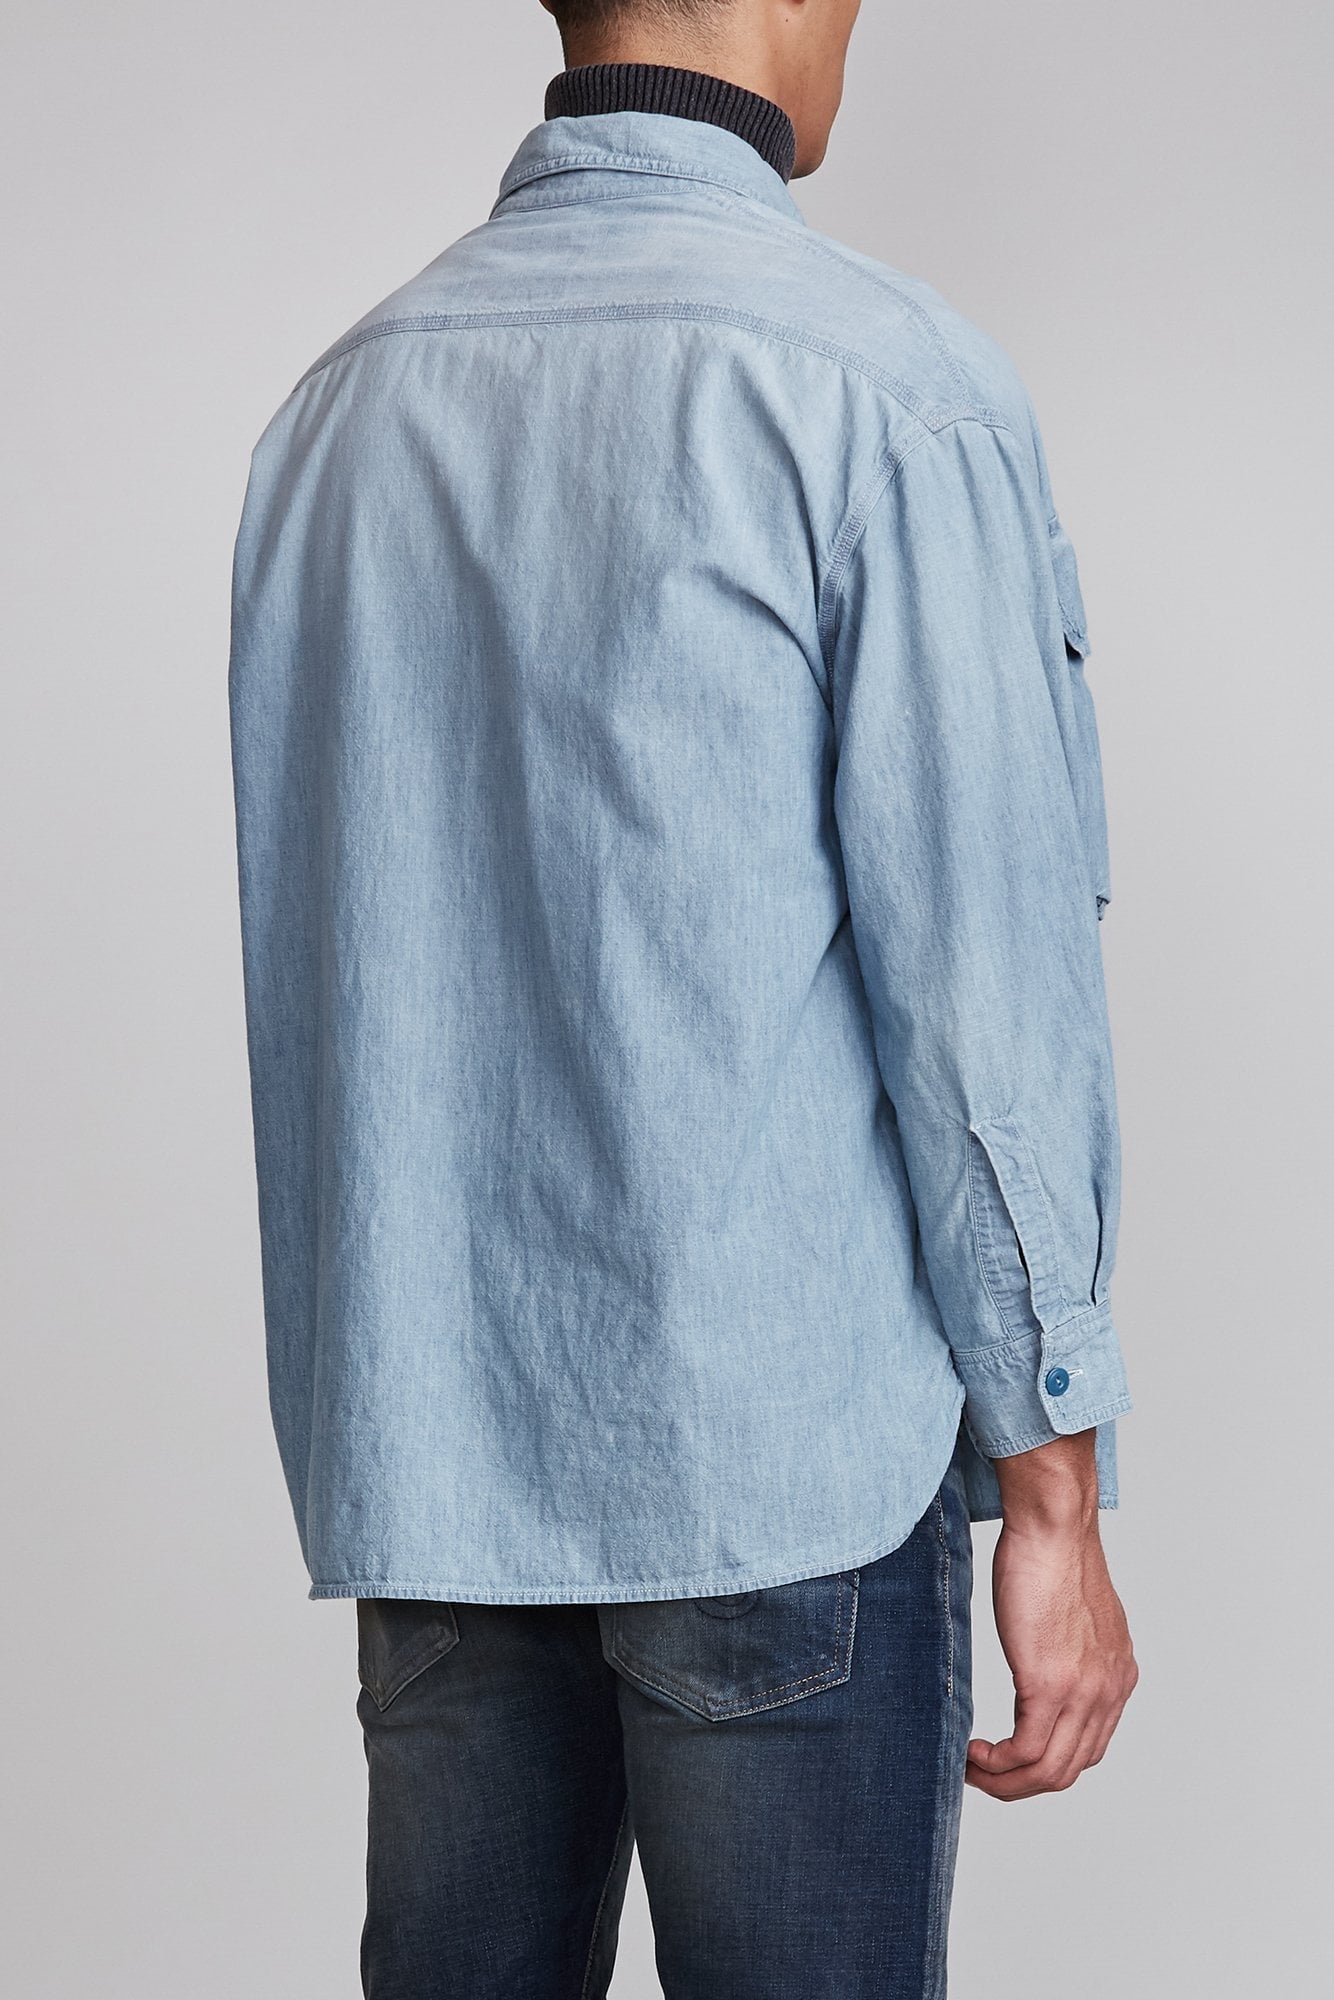 D'arcy Work Shirt - Nell Blue